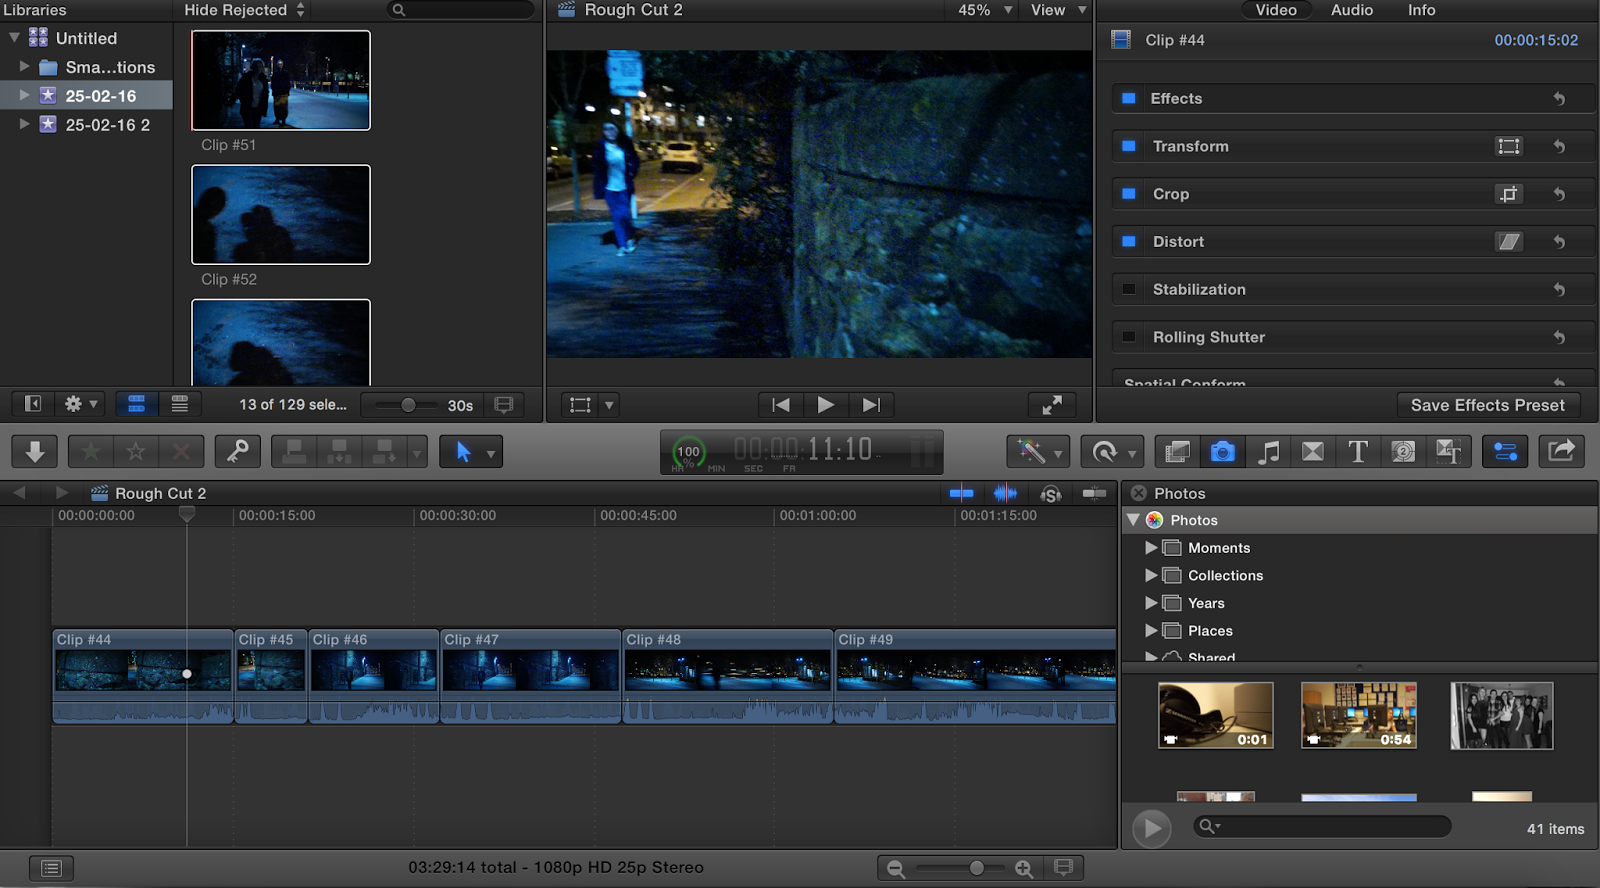 We Used Final Cut Pro X Because It Offers A Lot Of Diffe Opportunities And Varieties In Terms Editing With The Use Were Able To